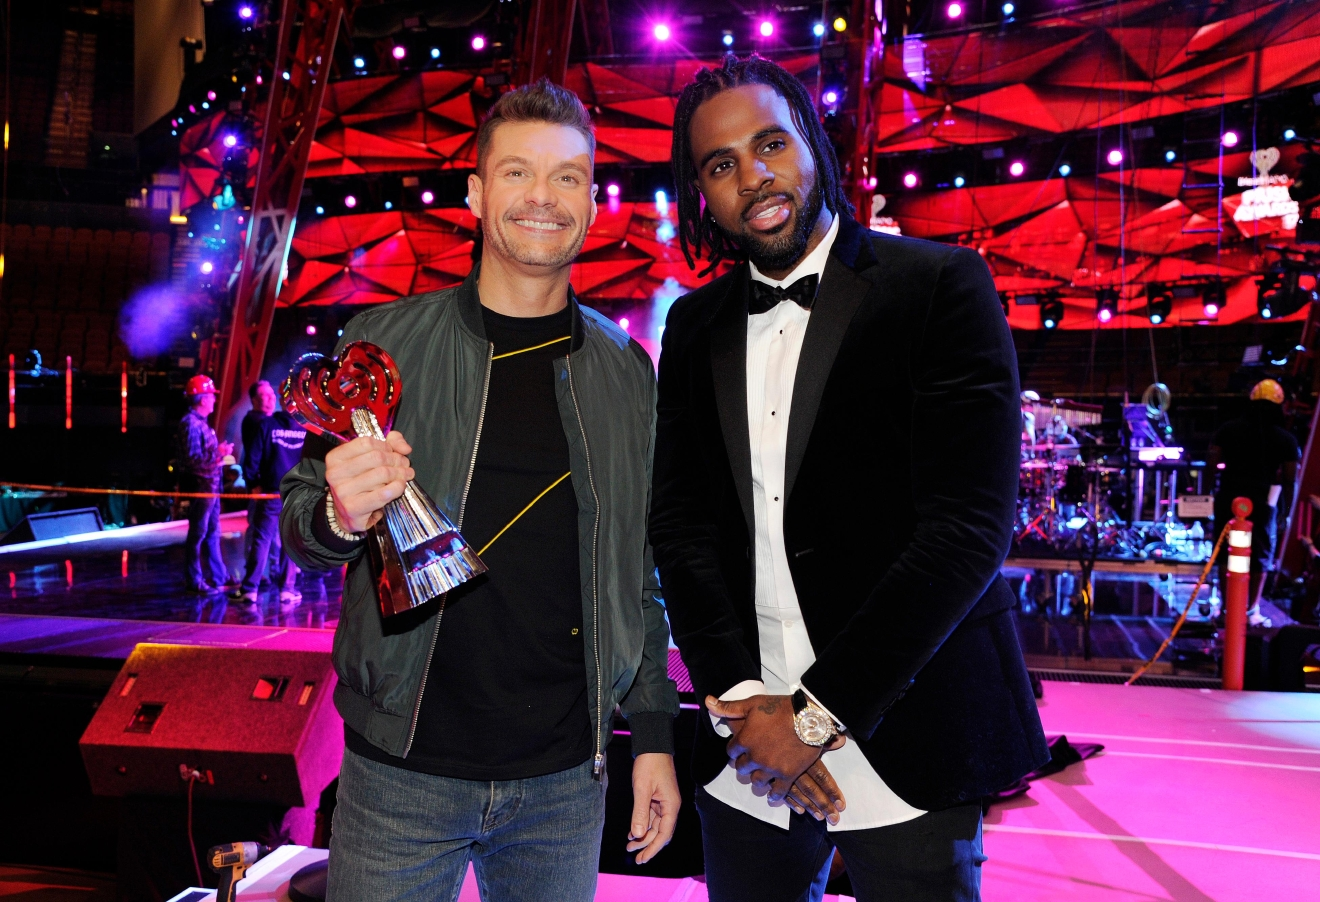 Host Ryan Seacrest, left, and singer Jason Derulo pose together at the press preview day for the 2017 iHeartRadio Music Awards at The Forum on Thursday, March 2, 2017, in Inglewood, Calif. The annual pop music awards show will be held on Sunday at The Forum. (Photo by Chris Pizzello/Invision/AP)